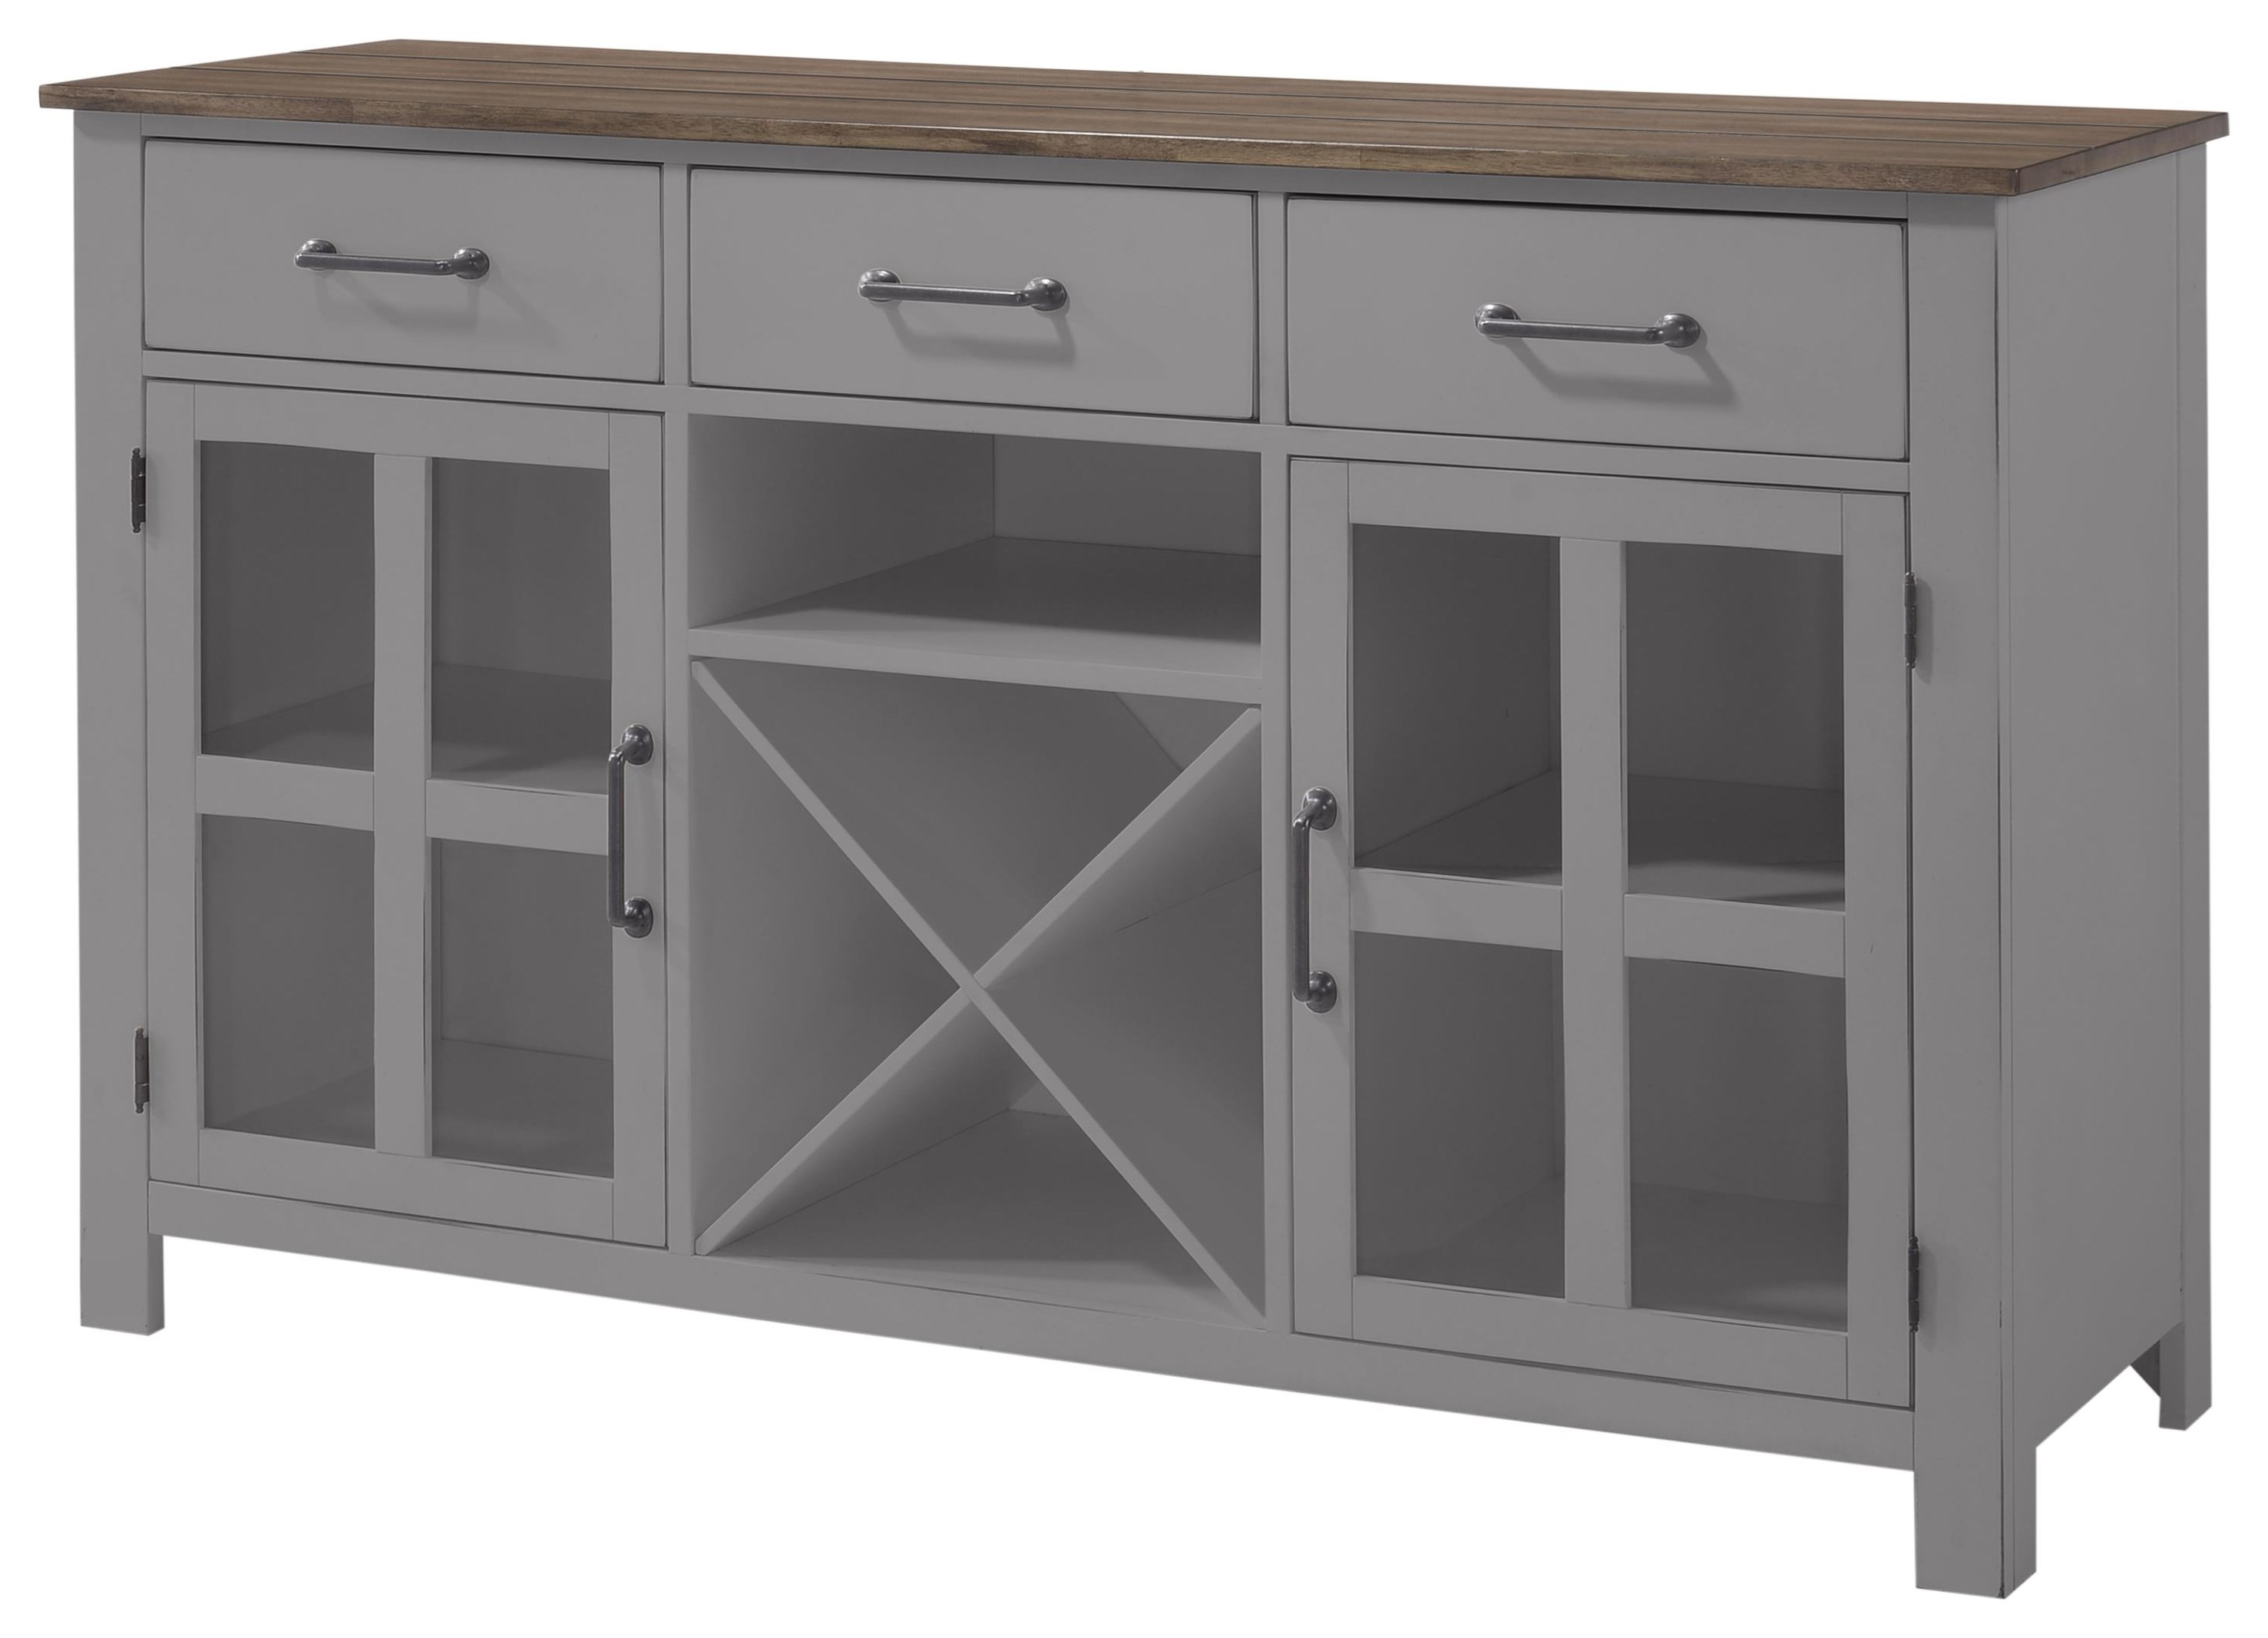 5059 Server by United Furniture Industries at Value City Furniture